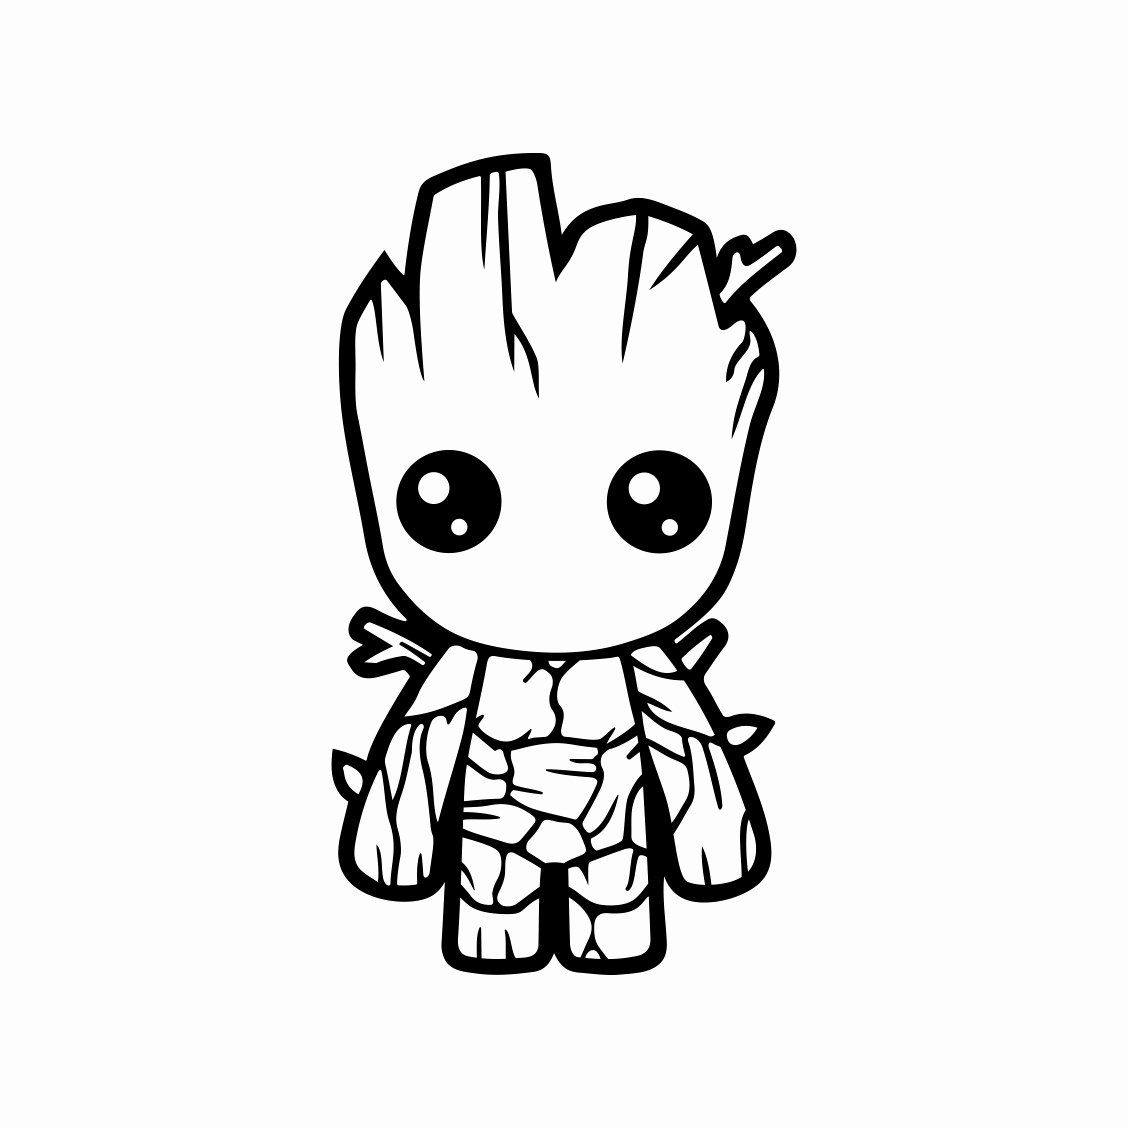 24 Baby Groot Coloring Page Avengers coloring, Avengers